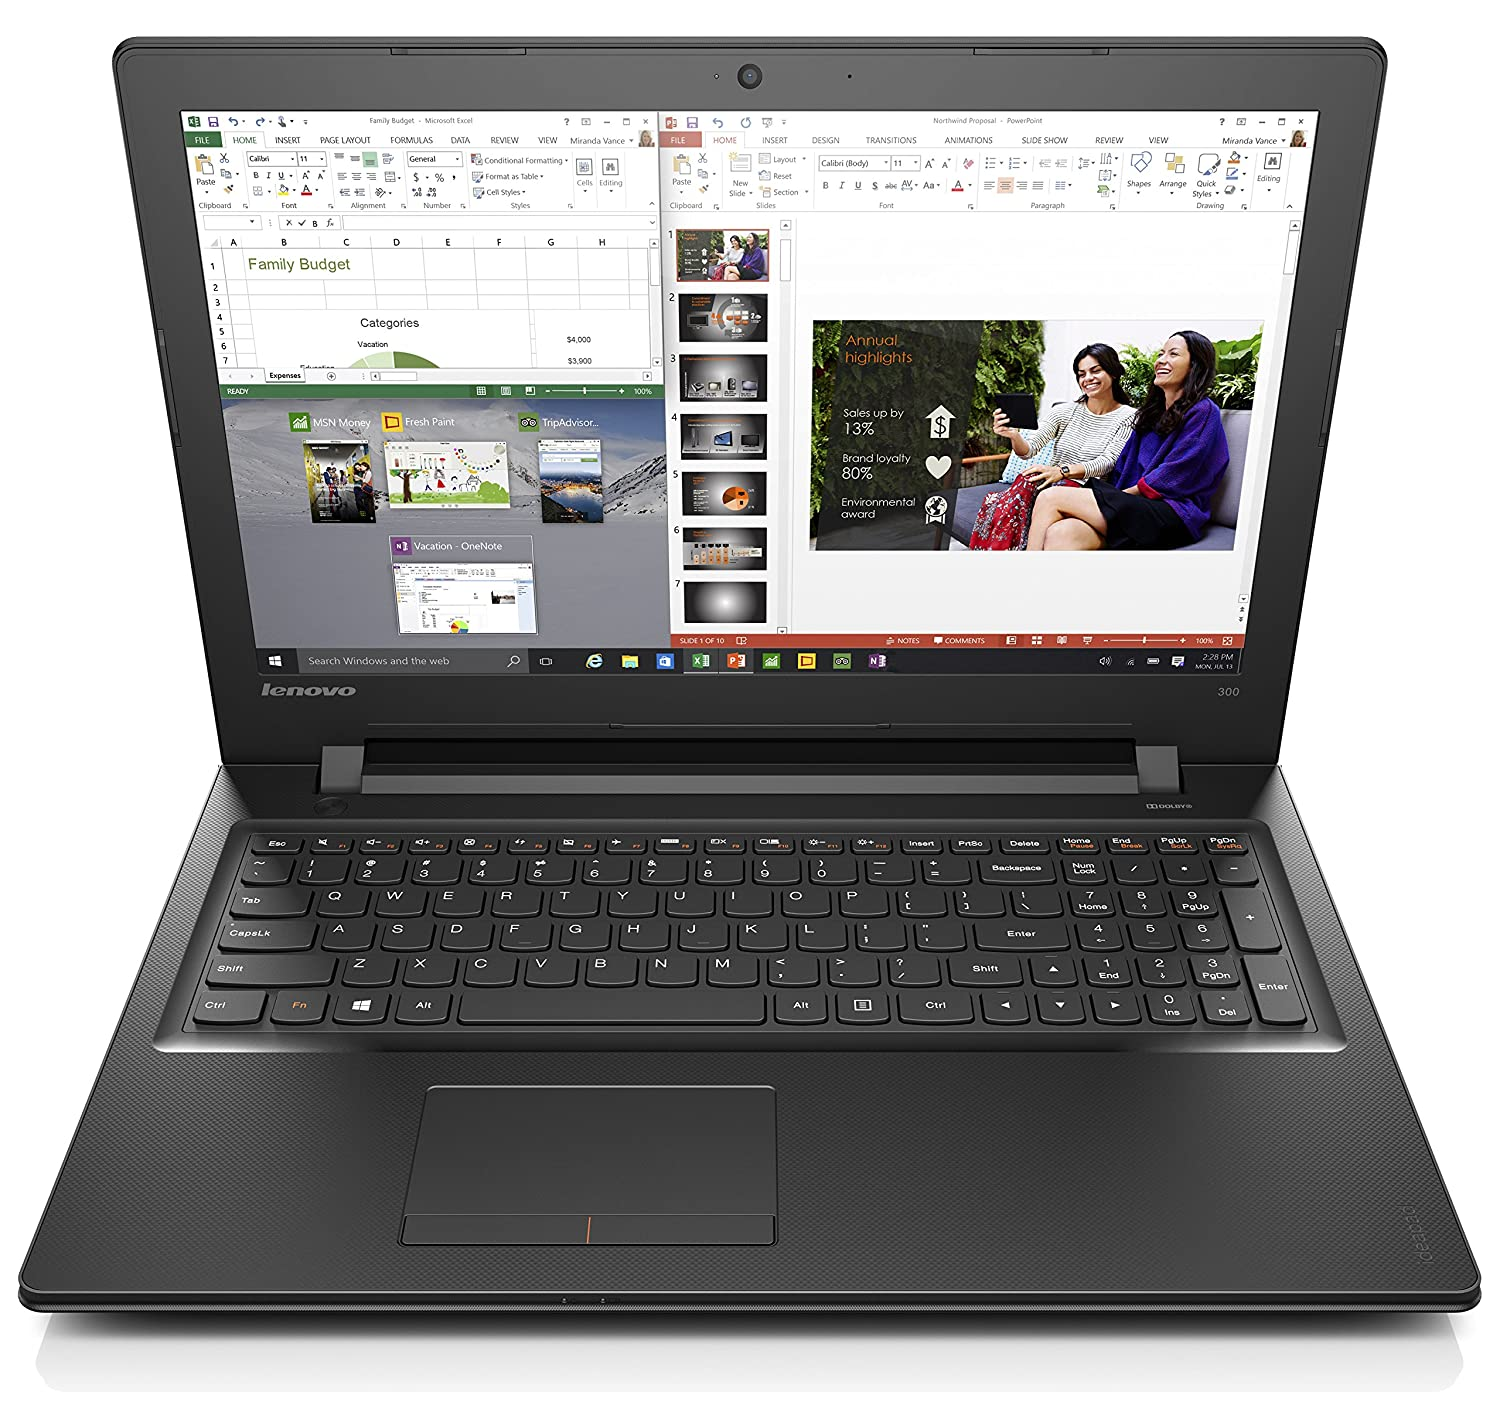 Lenovo Ideapad 300 15.6-Inch Laptop (Core i7, 8 GB RAM,...